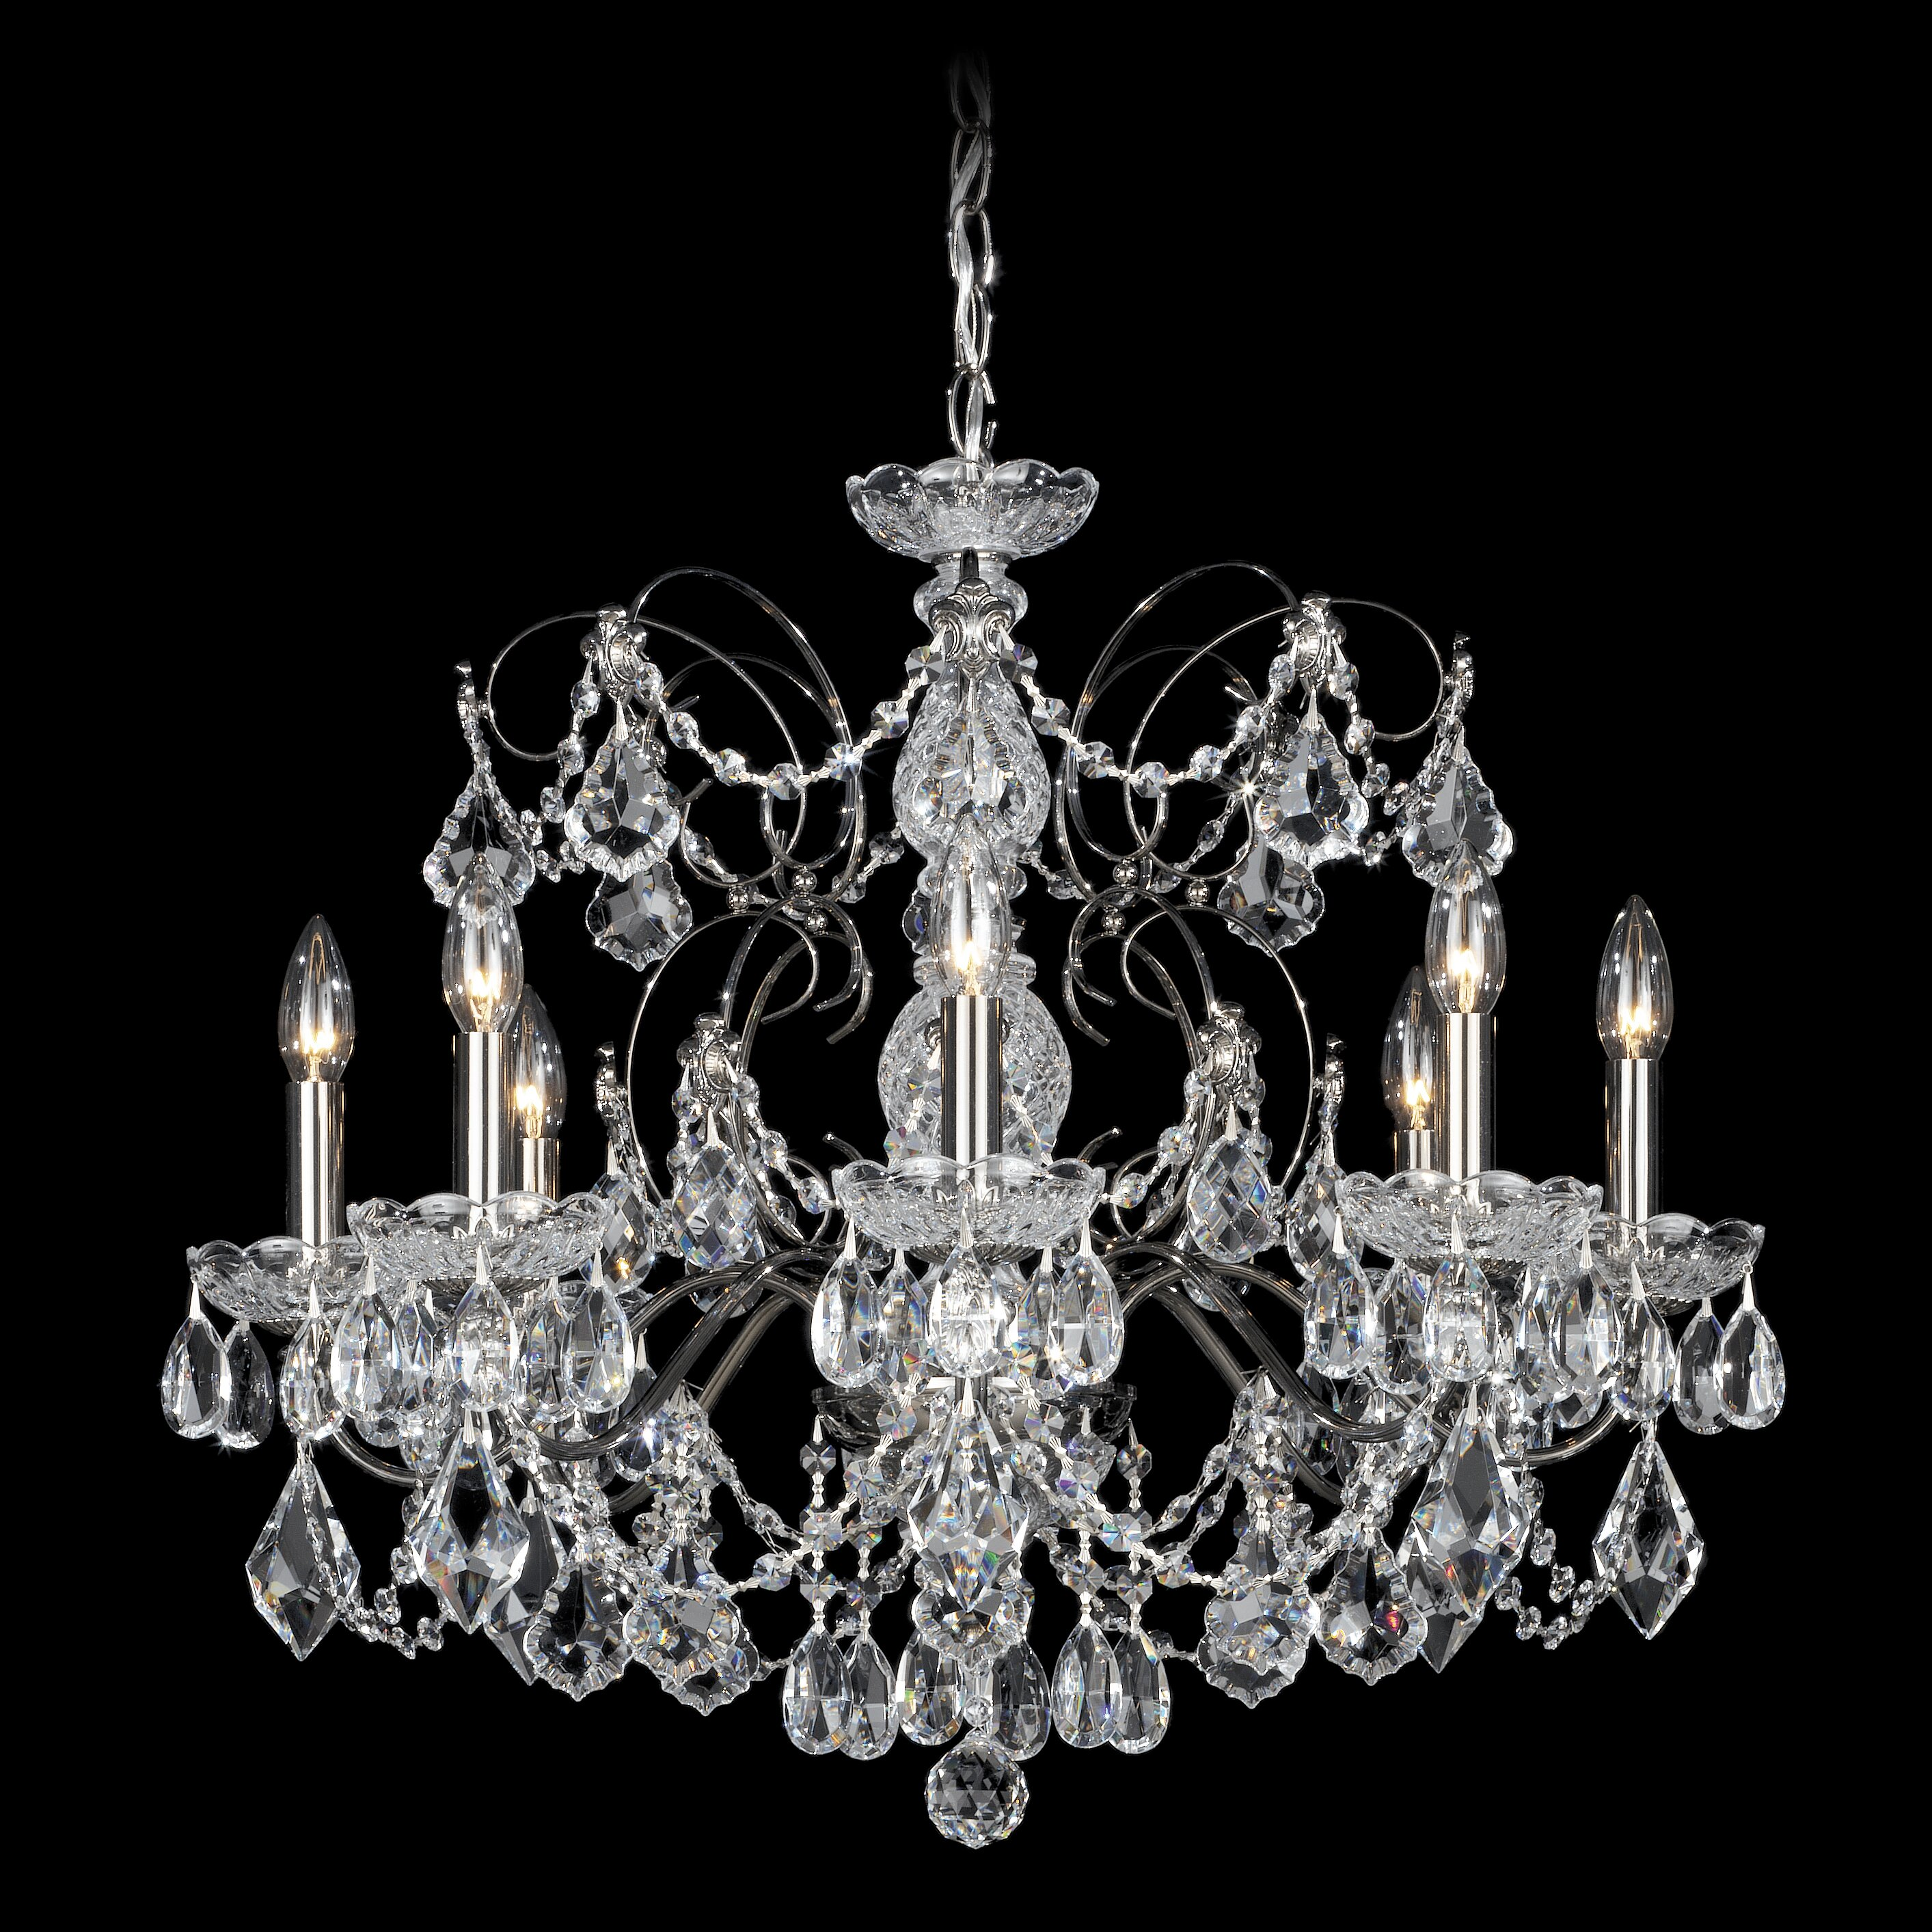 Schonbek century 8 light chandelier reviews wayfair - Lights and chandeliers ...